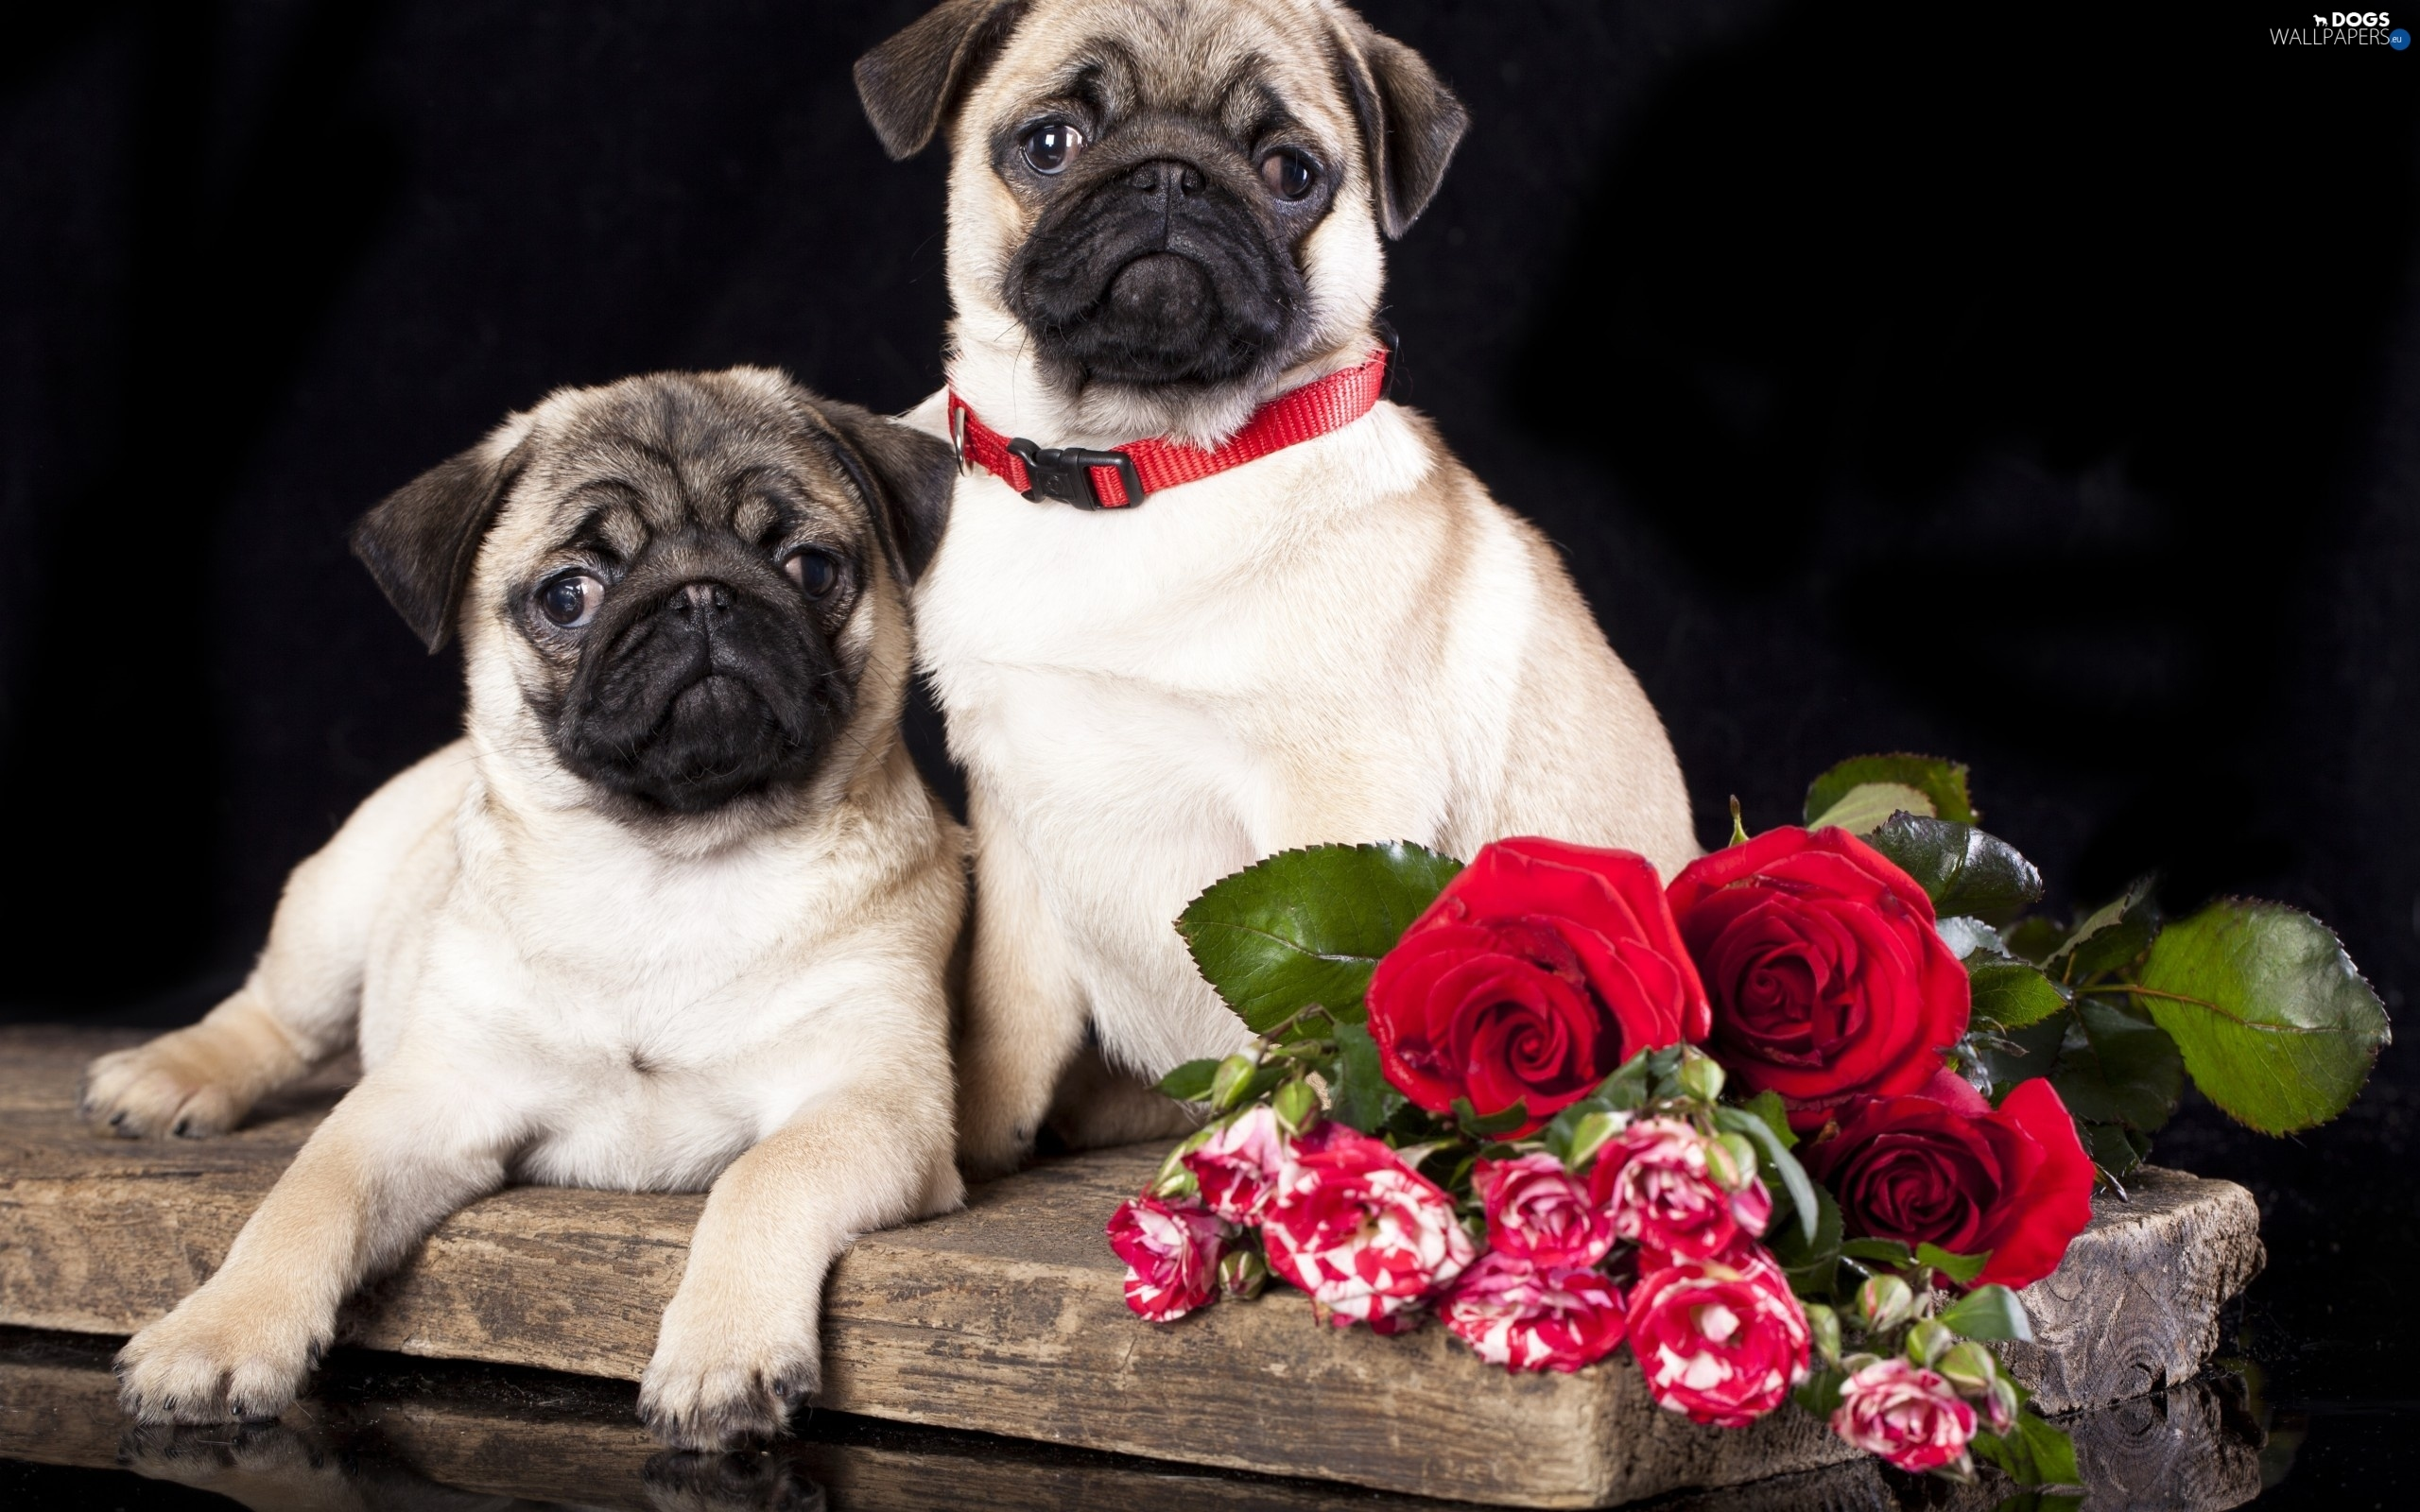 Flowers, pugs, Dogs, puppies